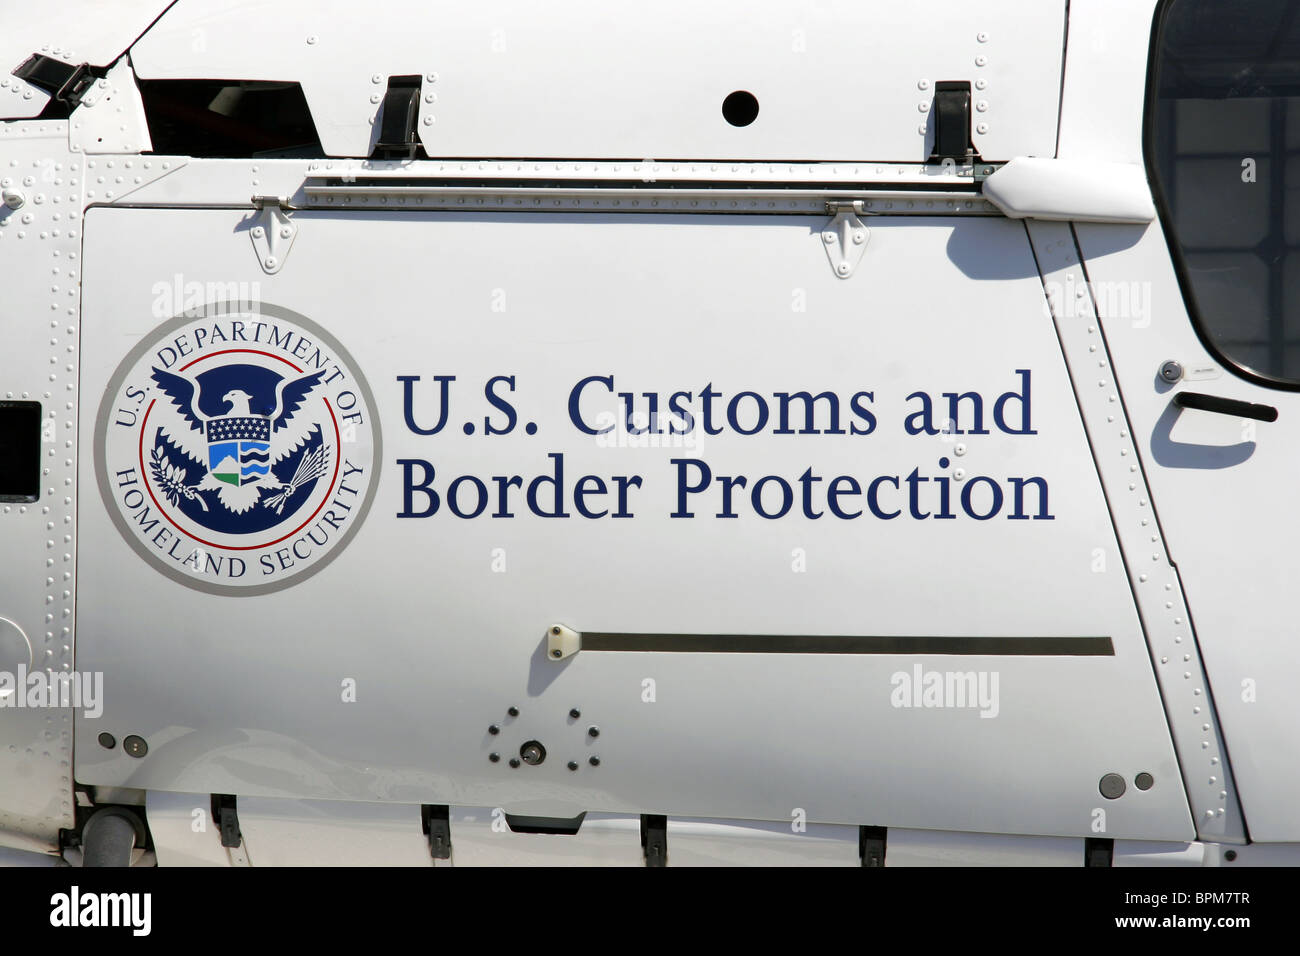 US Department of Homeland Security Customs and Border Protection helicopter detail - Stock Image